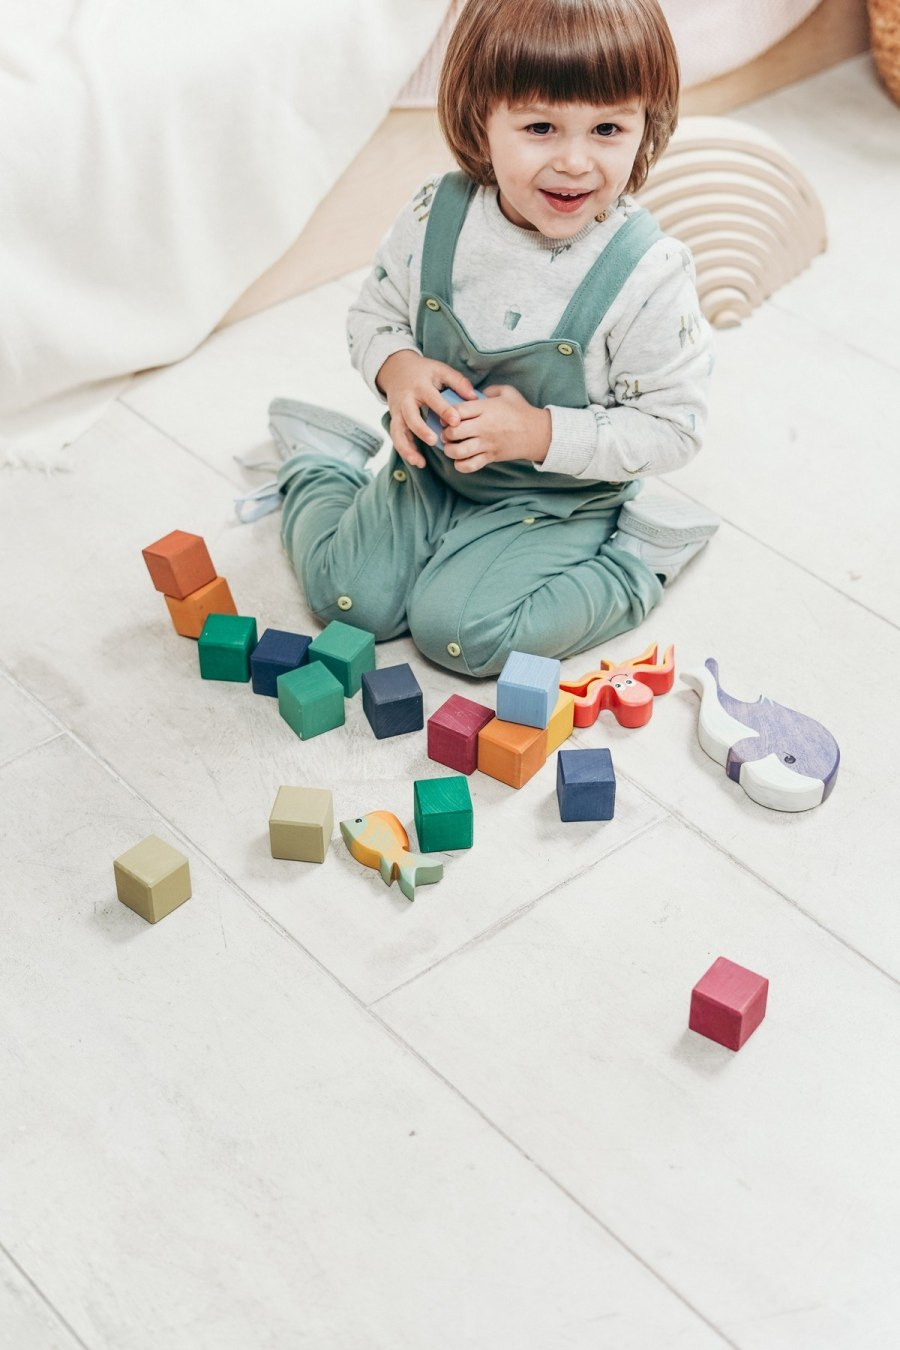 Toy building blocks are actually the building blocks of a child's all-round development. They not only help develop gross and fine motor skills, but also improve cognition. We help you understand the immense contribution building blocks make in child development.